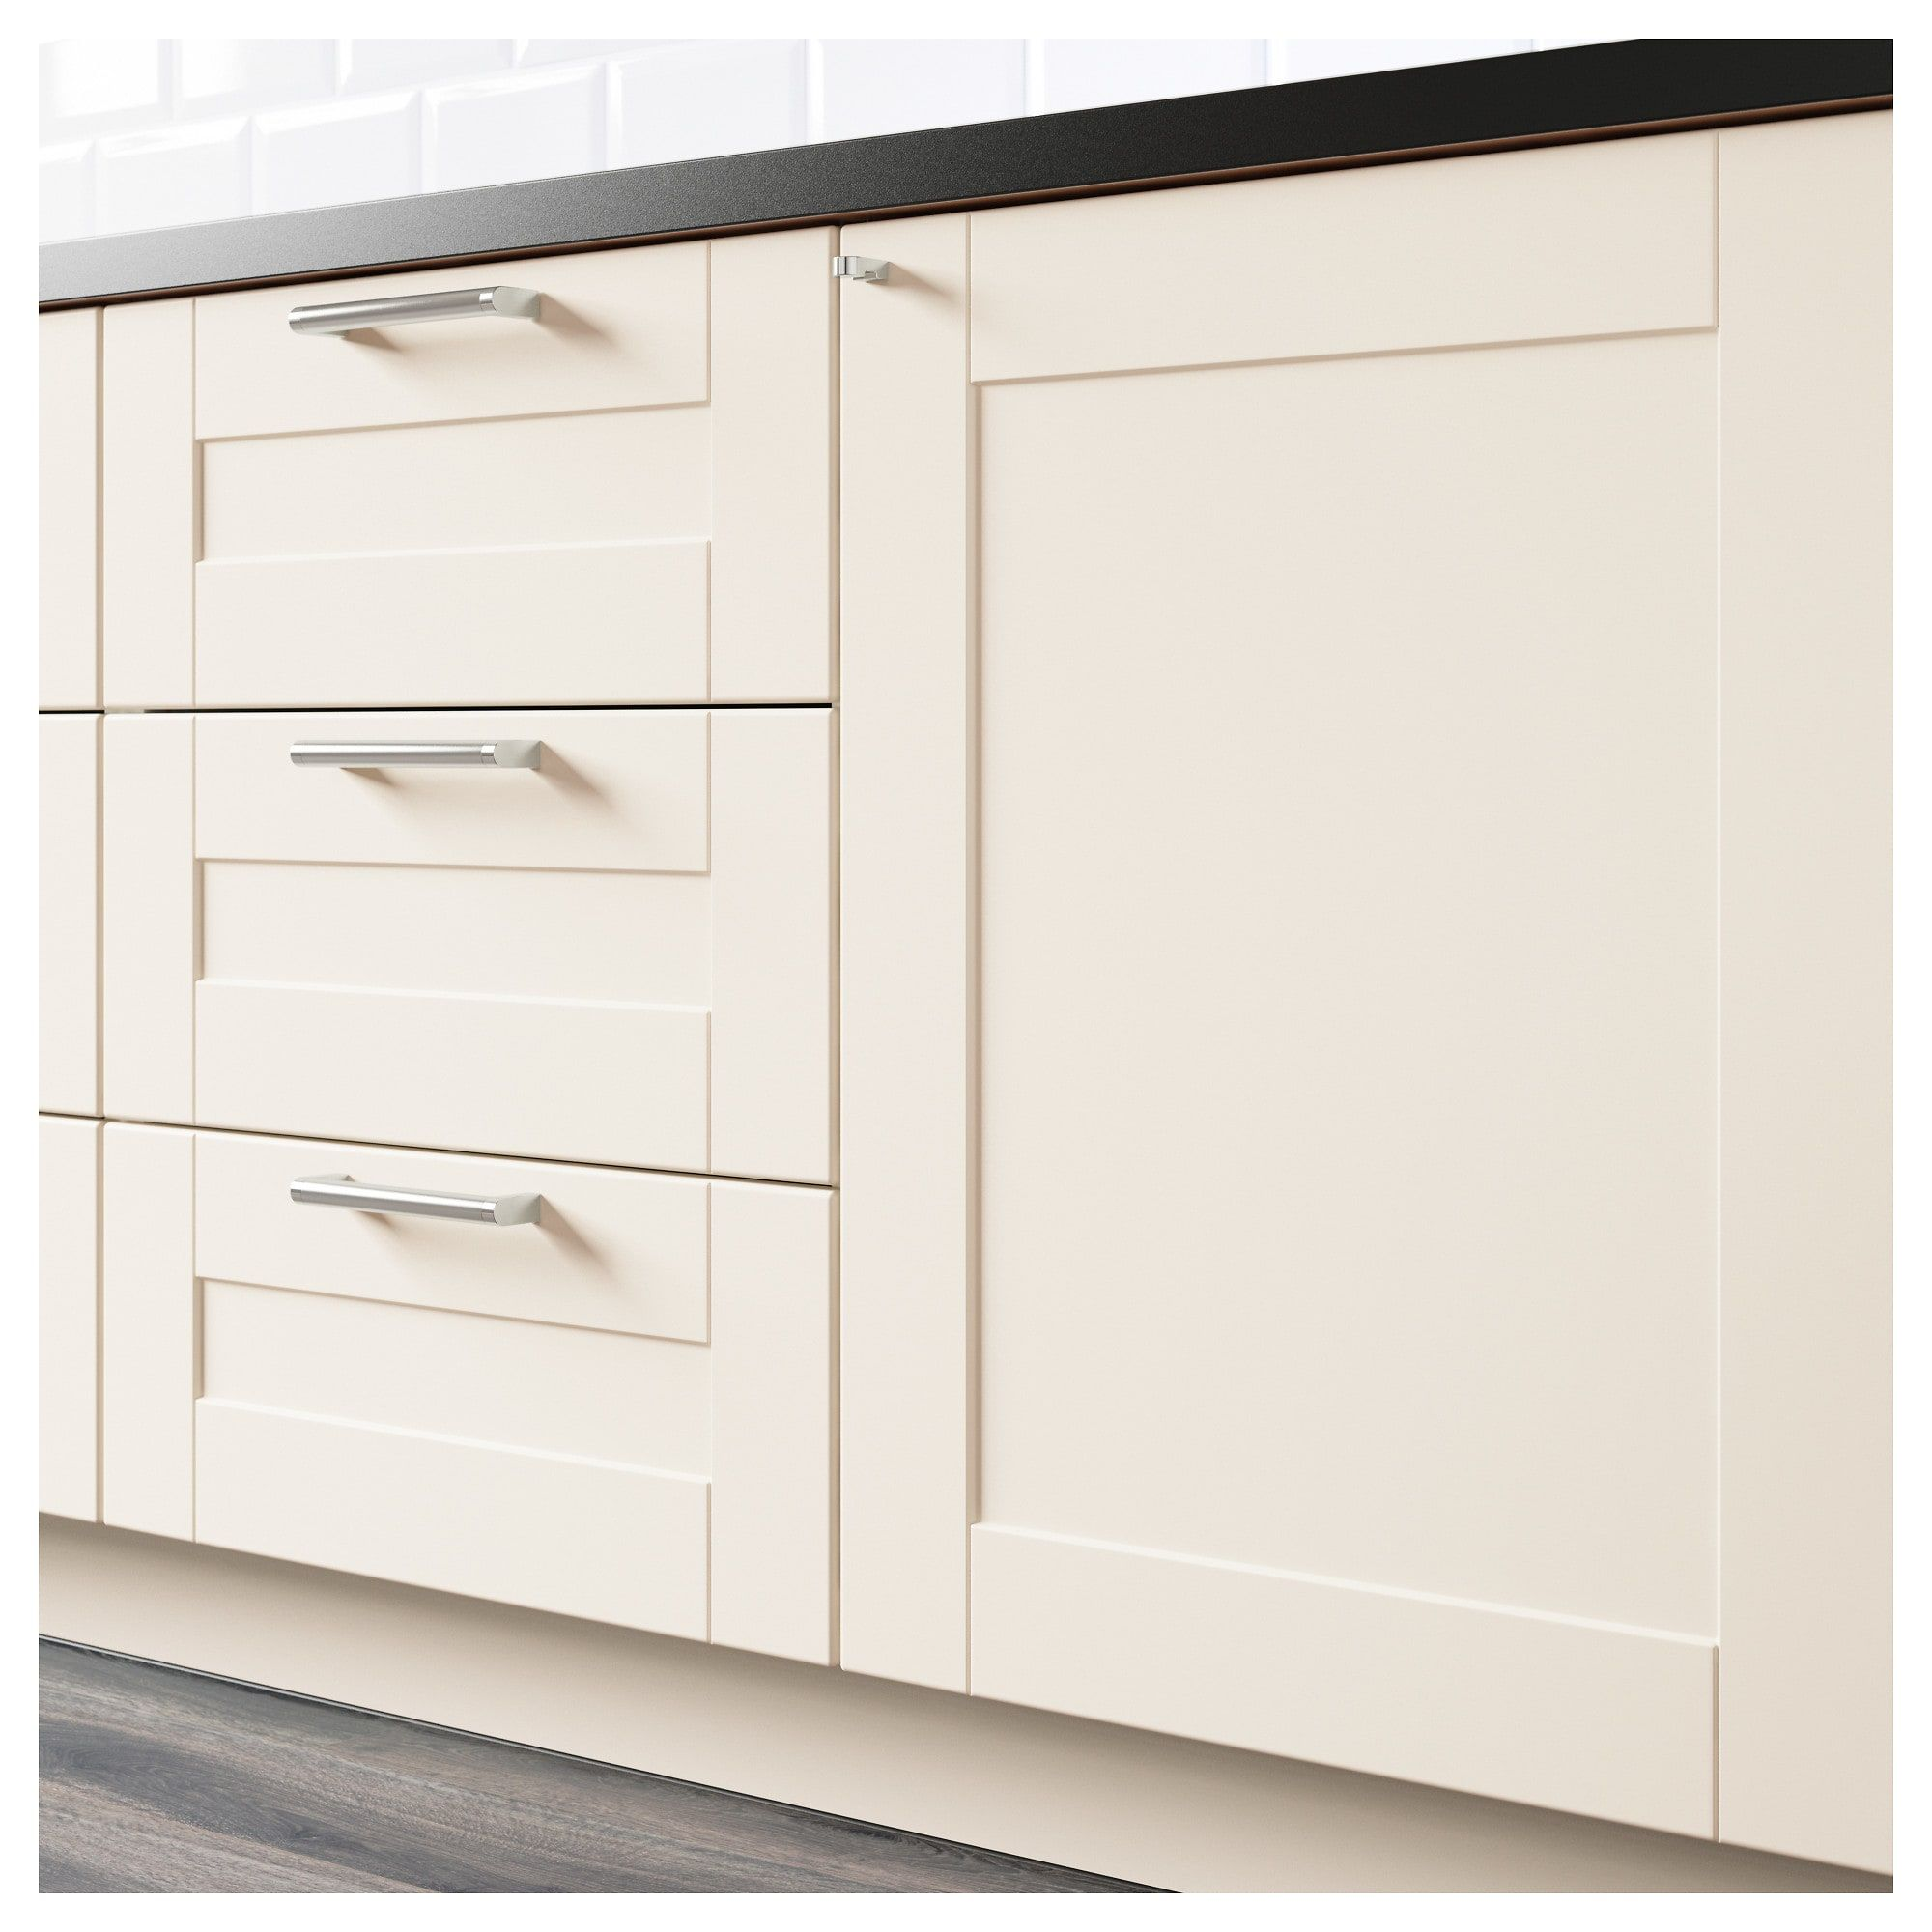 Best Ikea Grimslov Off White Drawer Front Base Cabinets Ikea 640 x 480